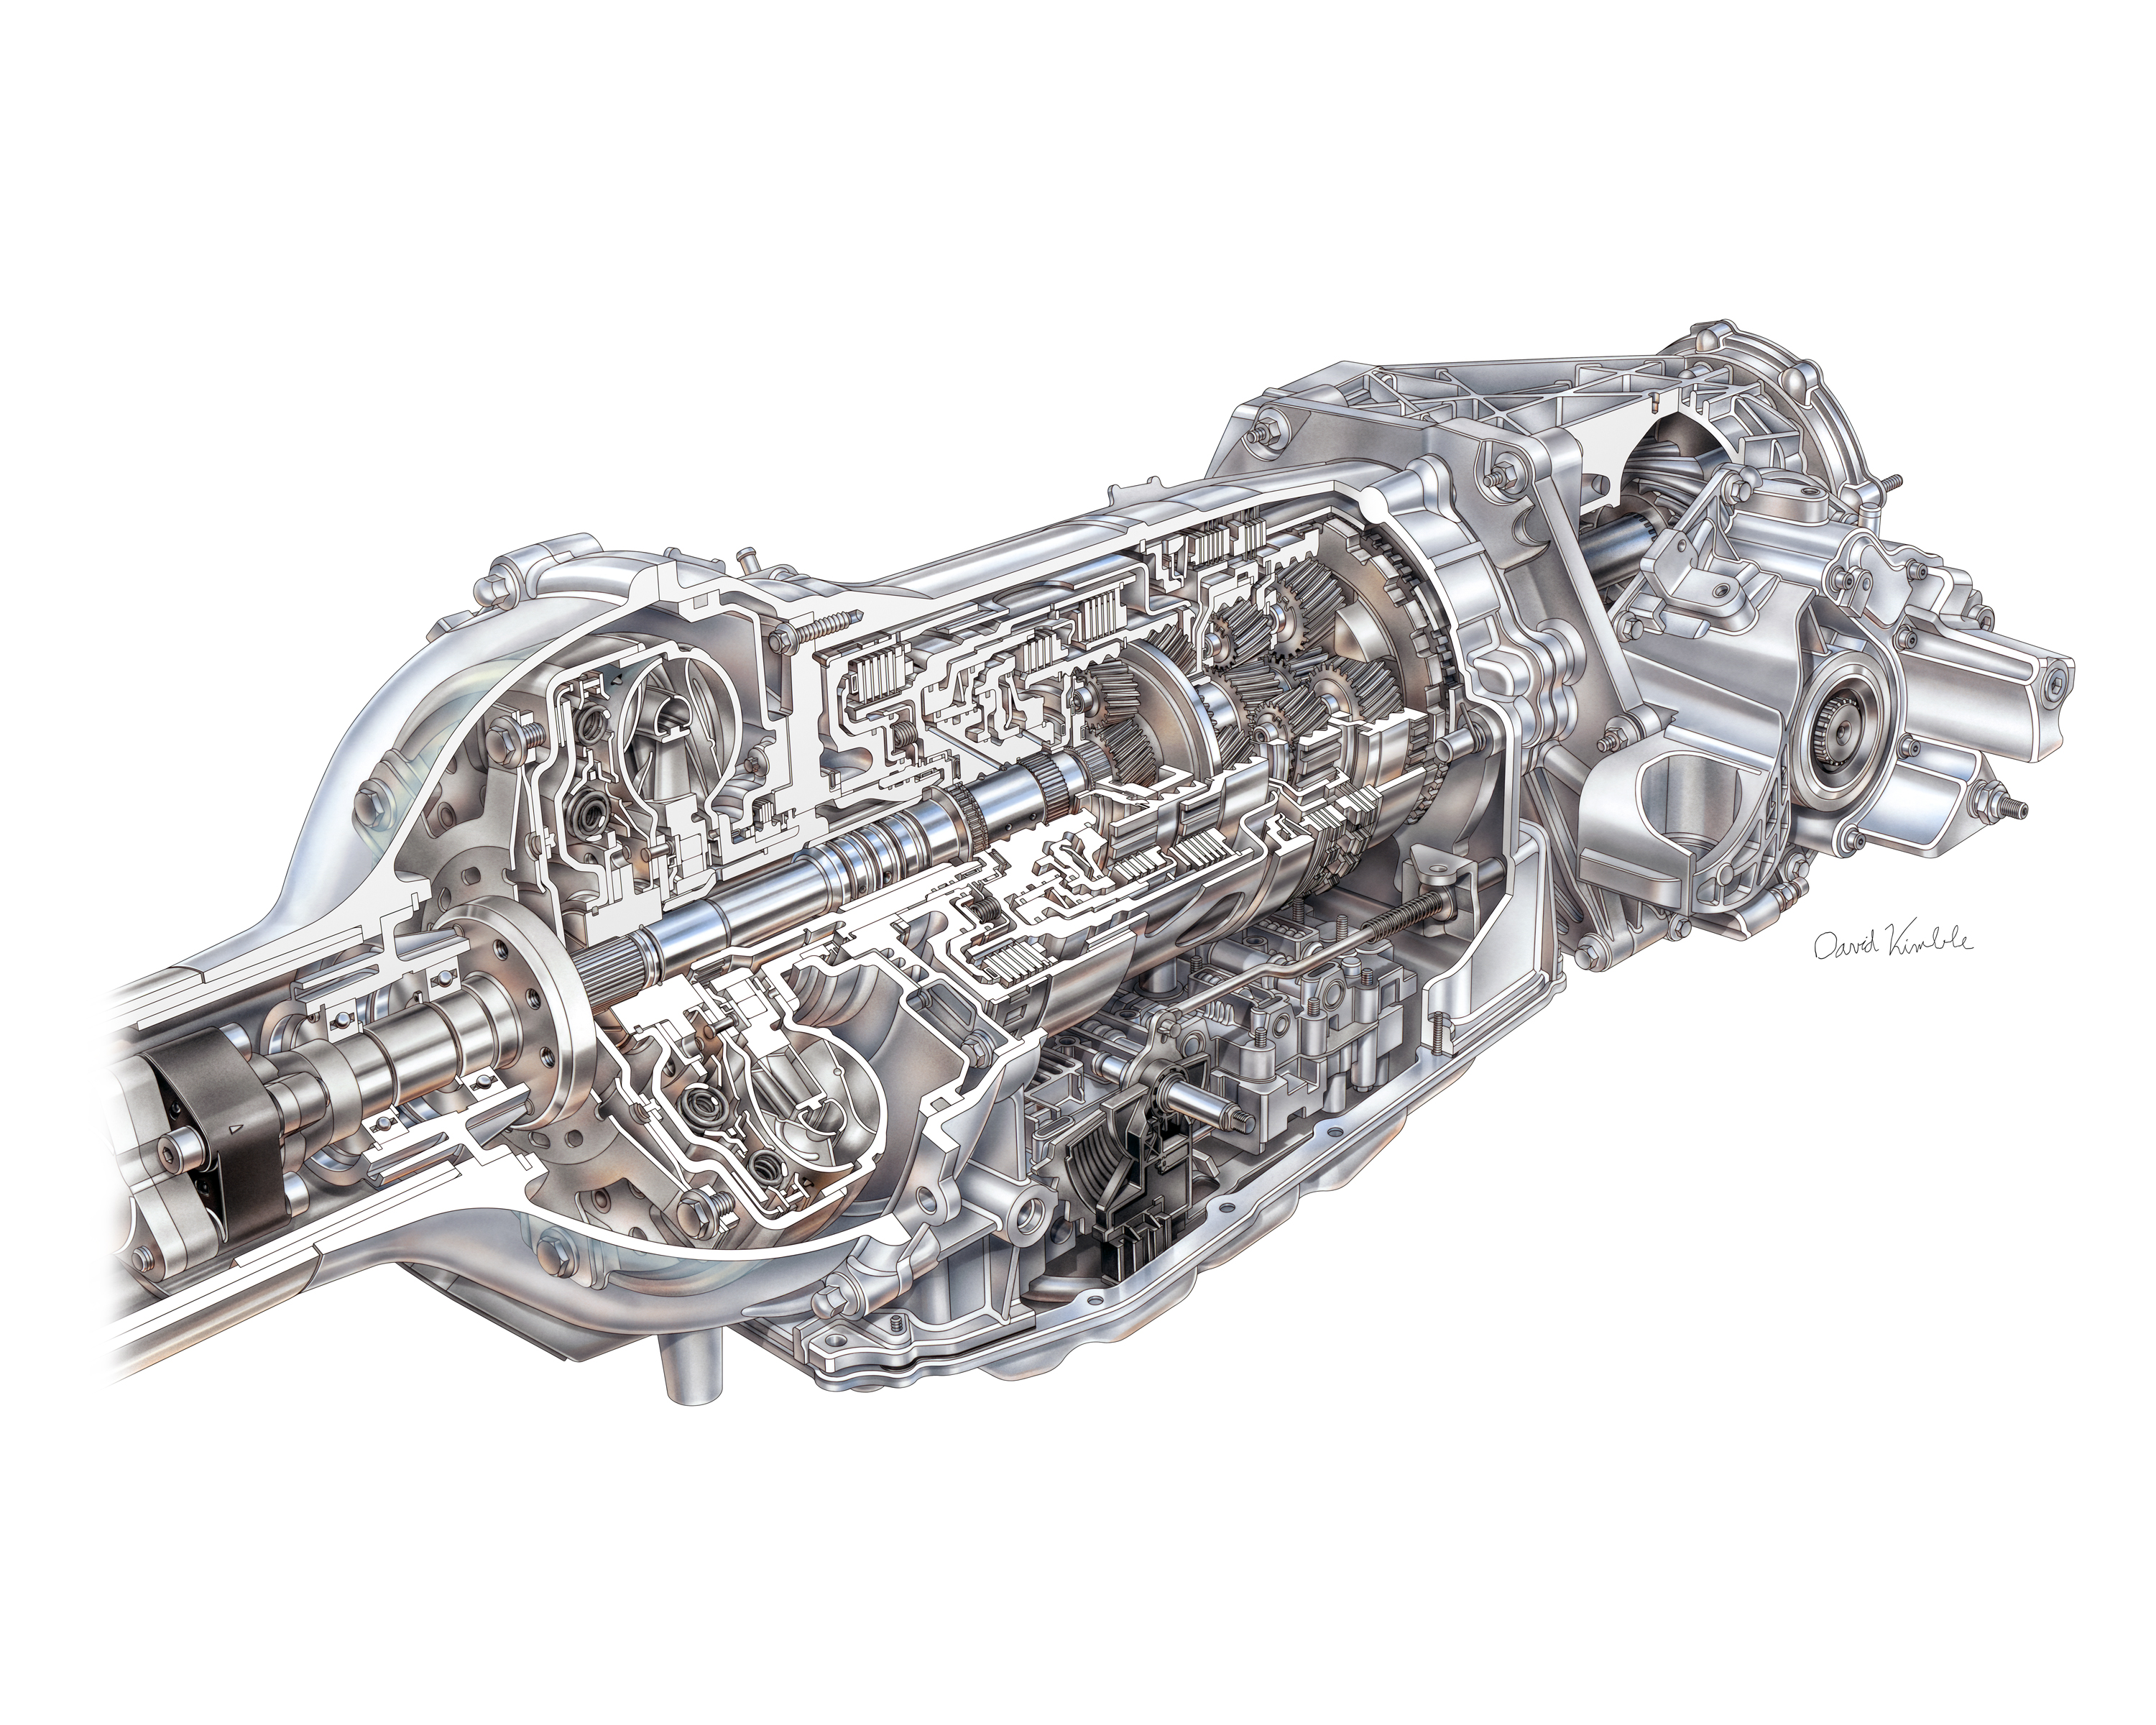 New 8 Speed Enables Quicker More Efficient Corvette